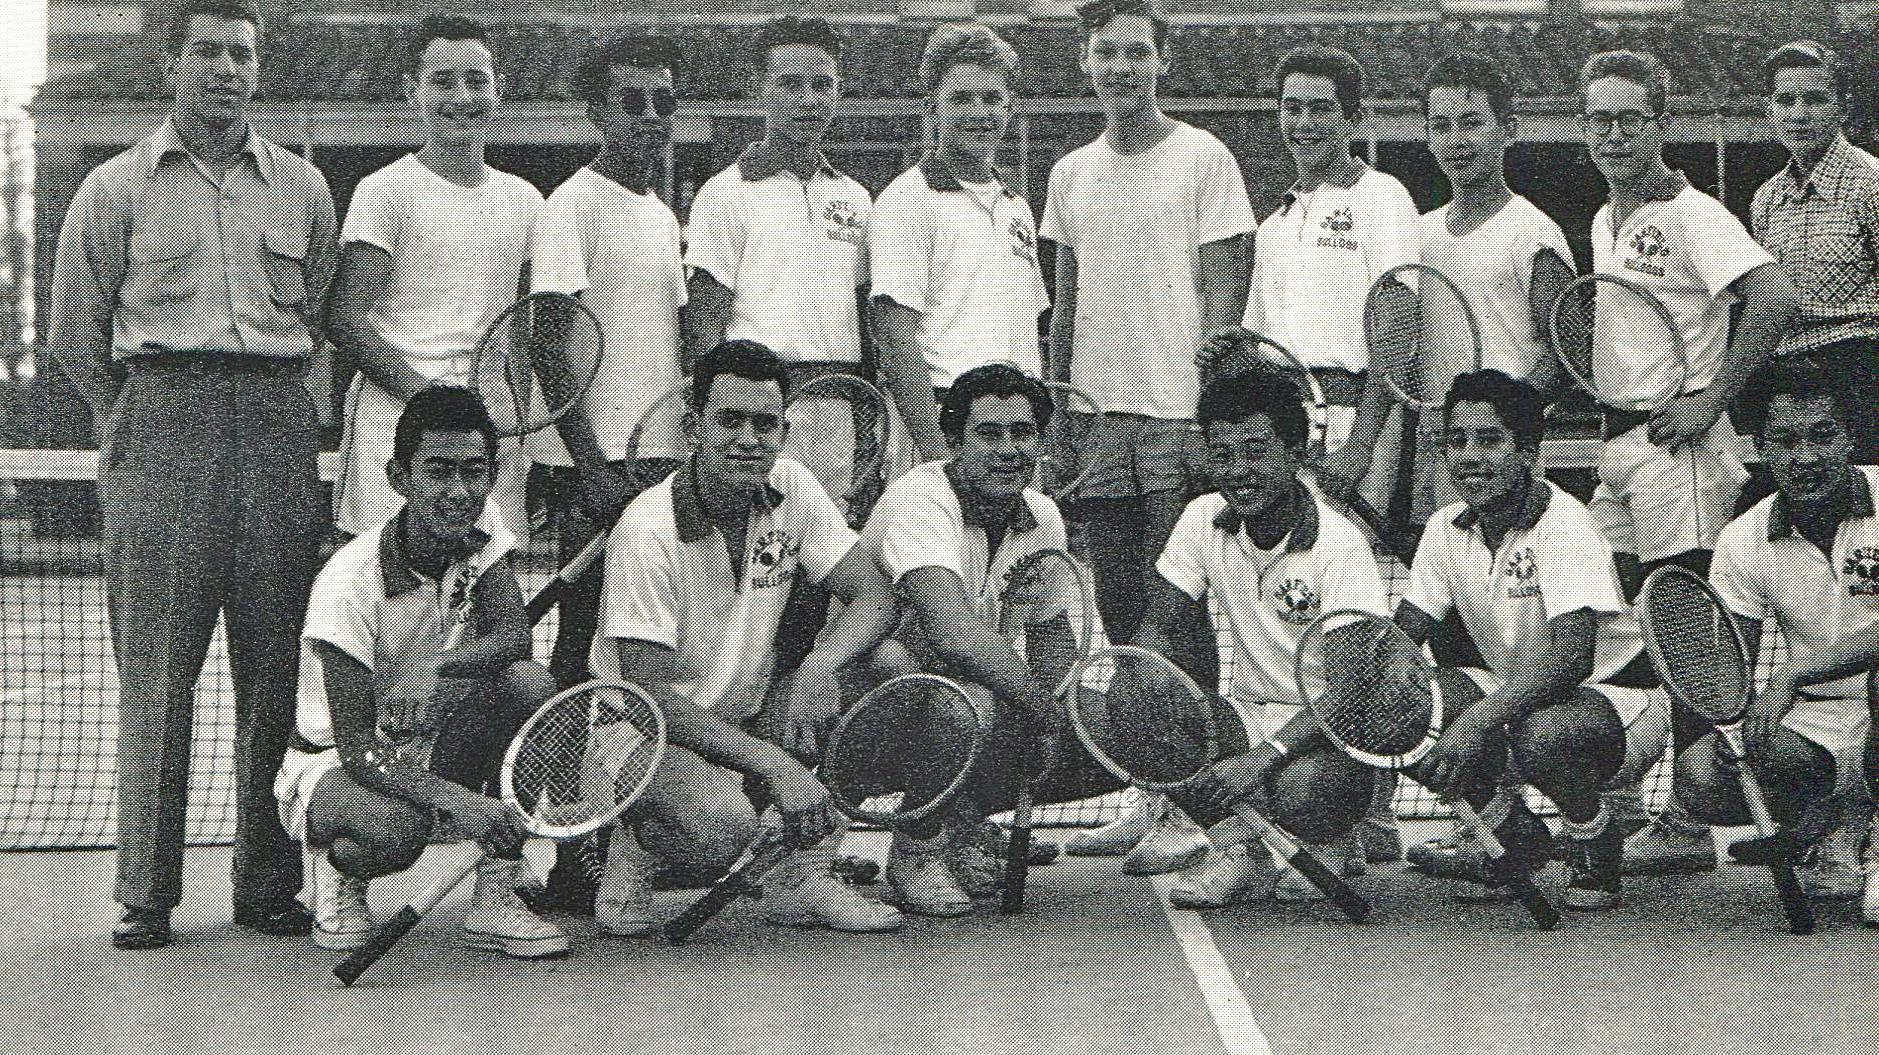 Tennis team 1953, Michael Hiller is standing second from the left